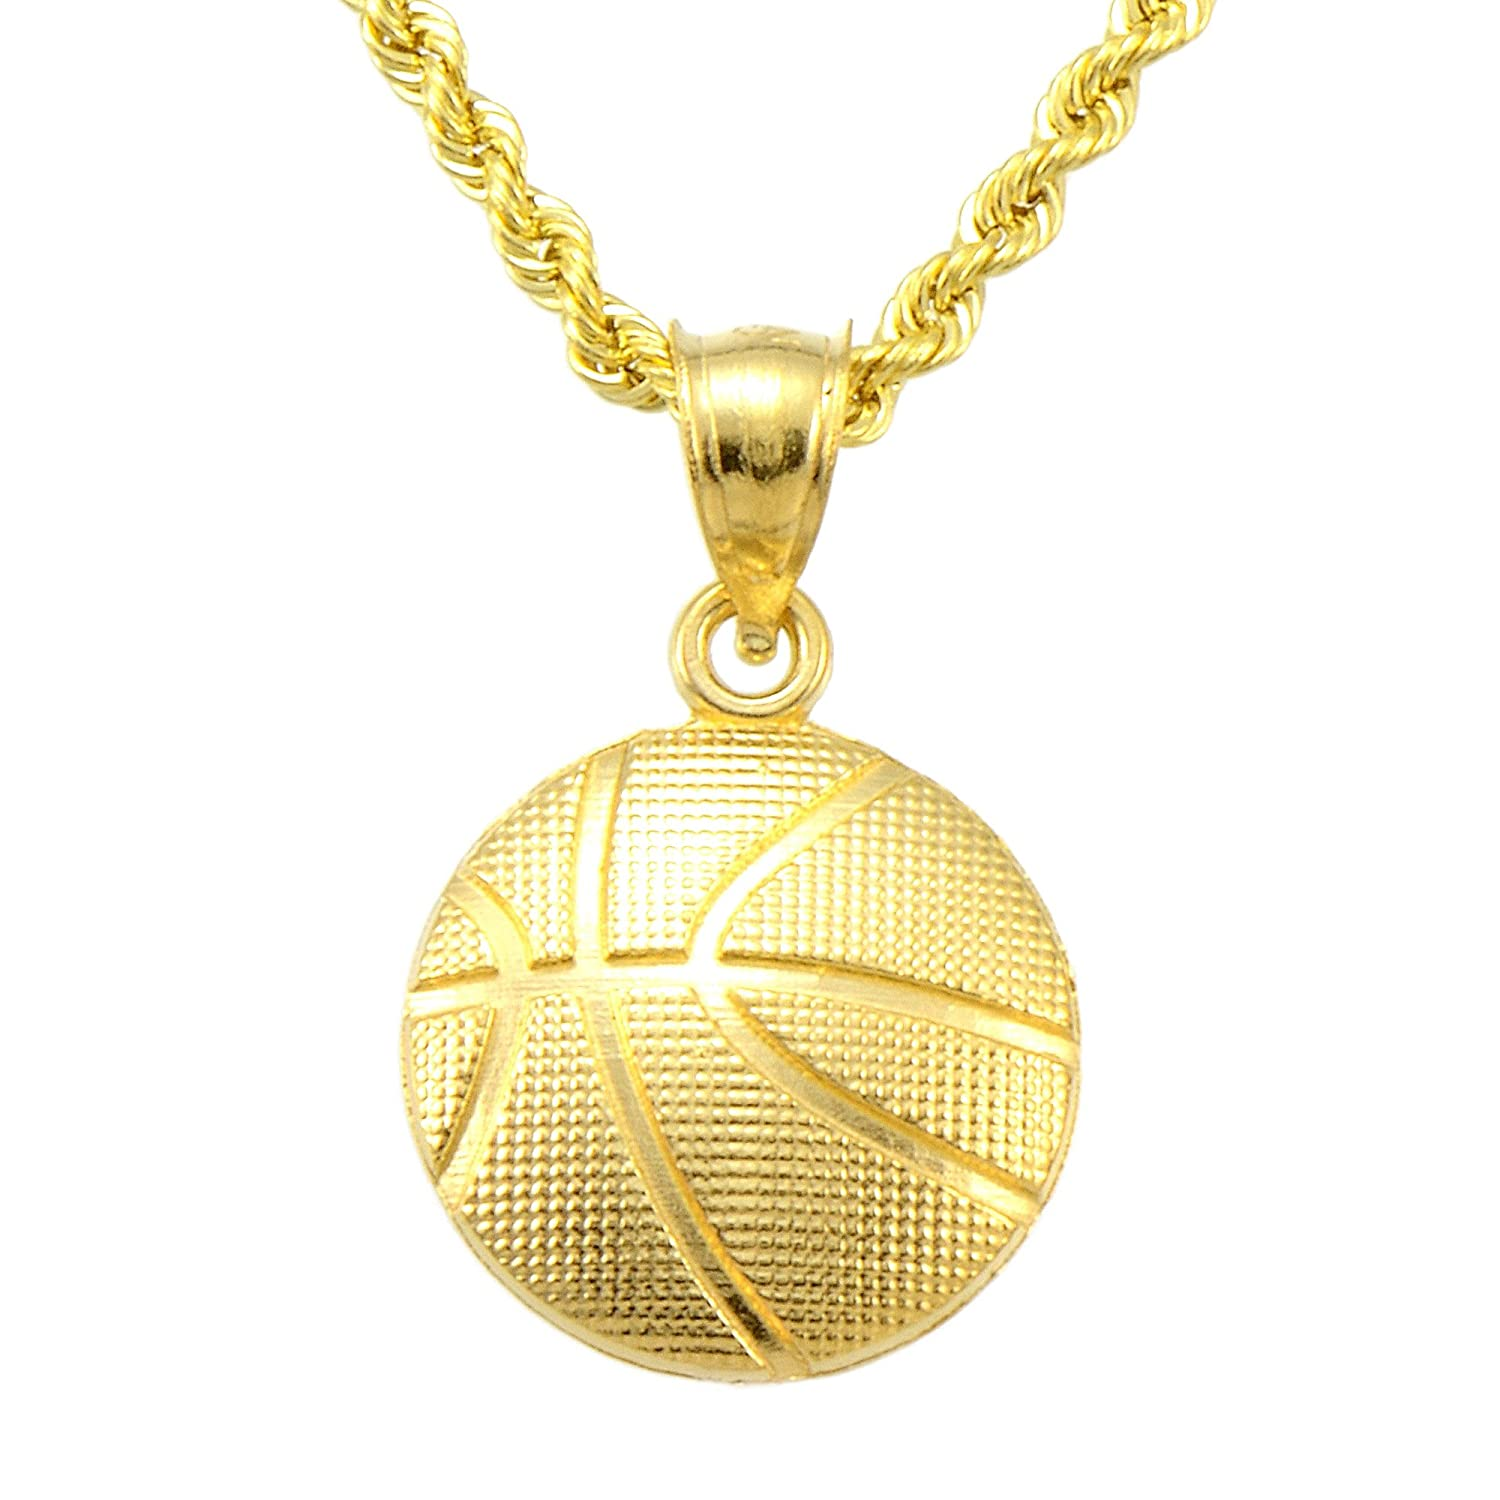 Amazon 14k yellow gold basketball pendant necklace 16 inches amazon 14k yellow gold basketball pendant necklace 16 inches rope chain jewelry mozeypictures Images